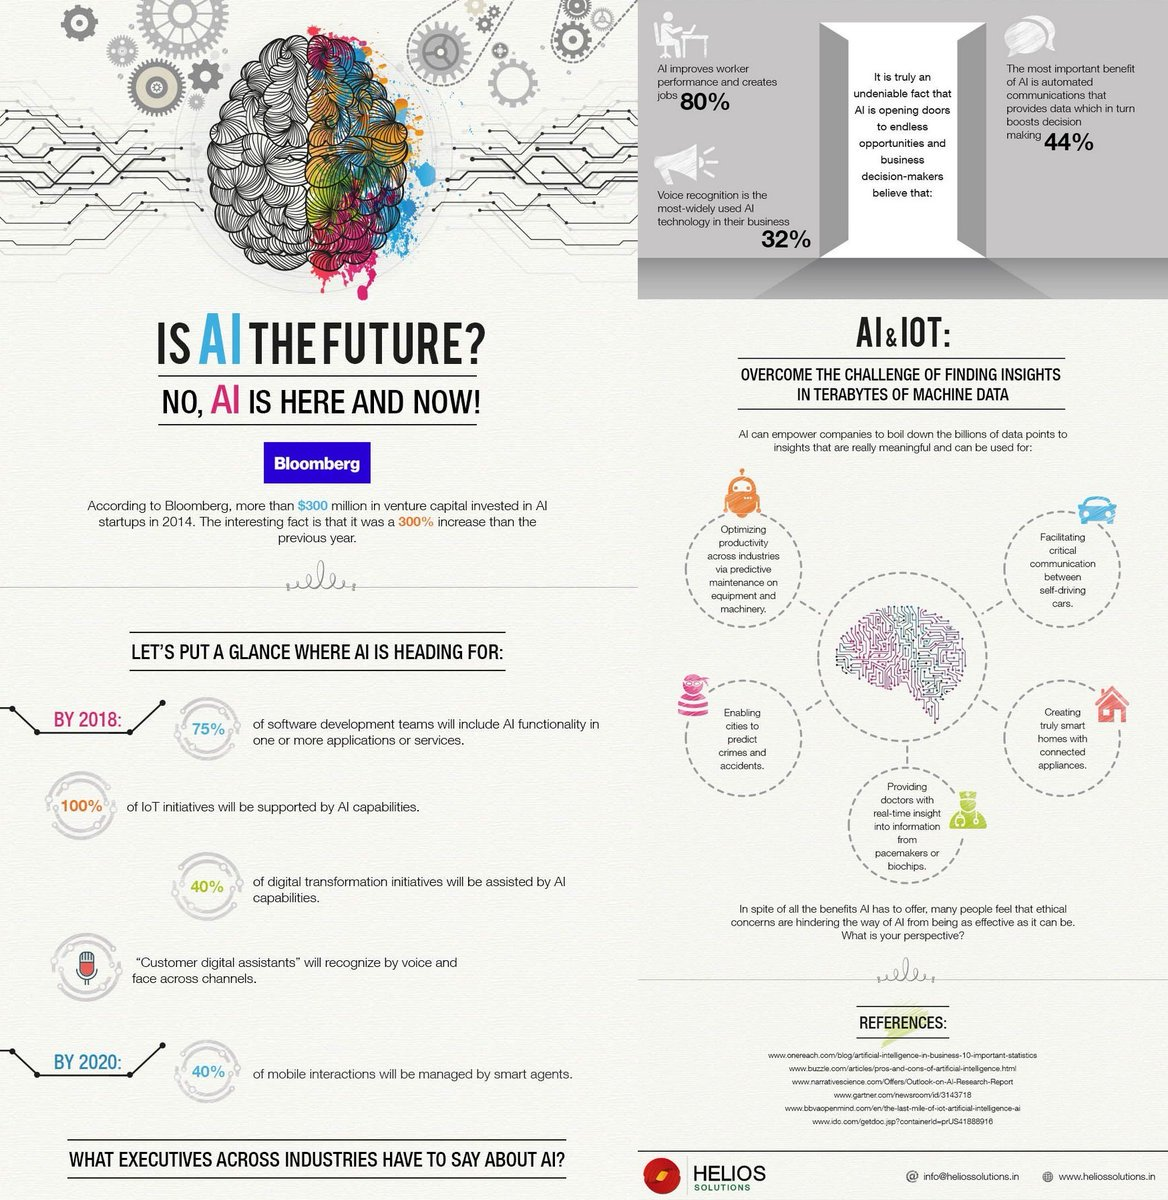 Impact of #AI on the #Business World [Infographic]   http:// blog.heliossolutions.in.convey.pro/l/R4G7w7x  &nbsp;   by @Helios_Solution #ML #DL #BigData... by #pierrepinna<br>http://pic.twitter.com/3goVlO9Zki